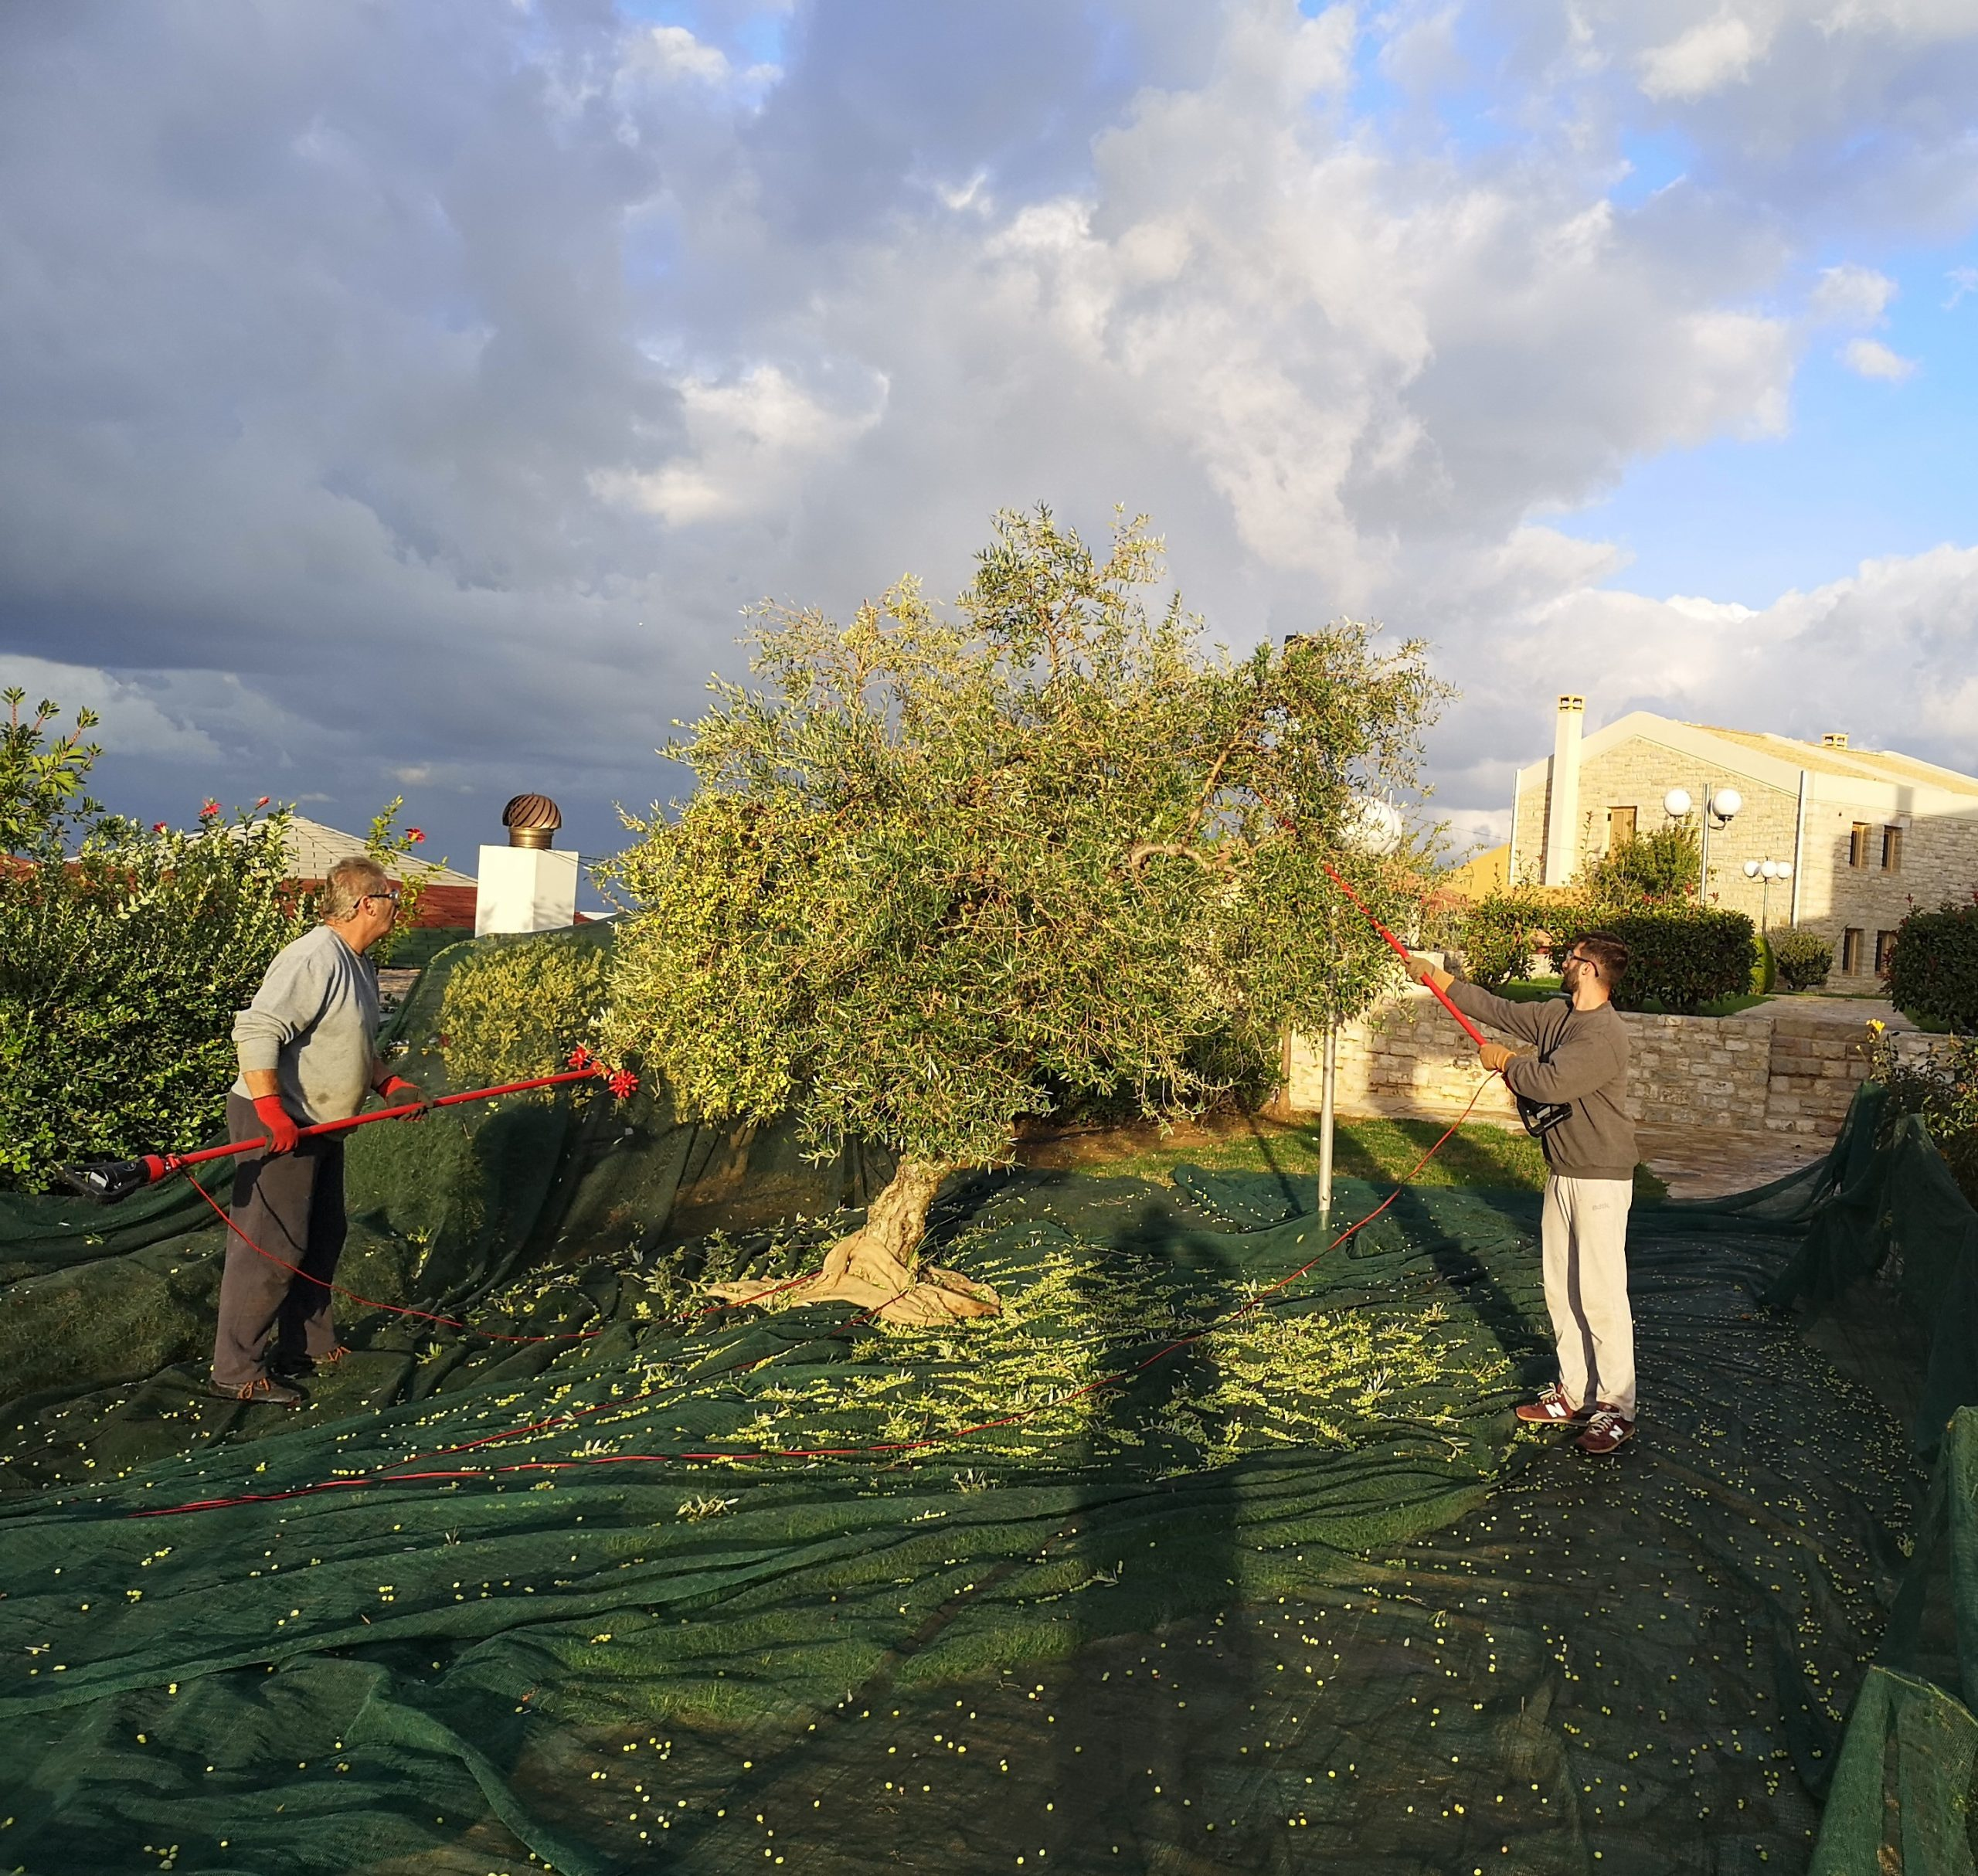 Our family harvesting time